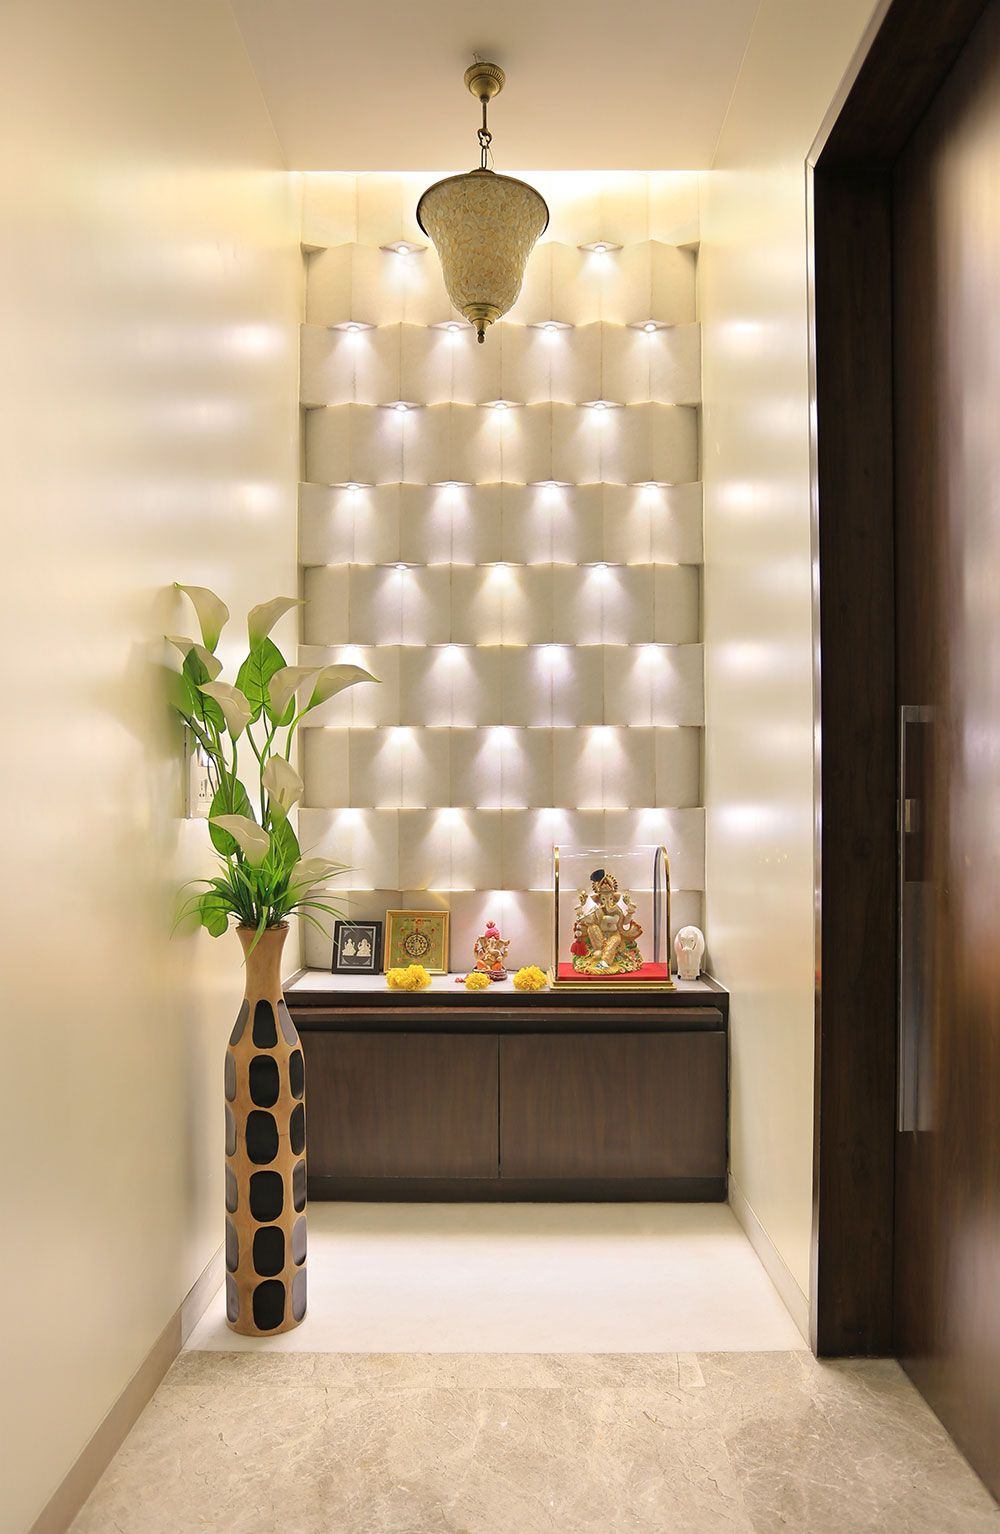 Pooja Room Door Designs Pooja Room: 6 Locations Ideas For Puja Space For Your Home